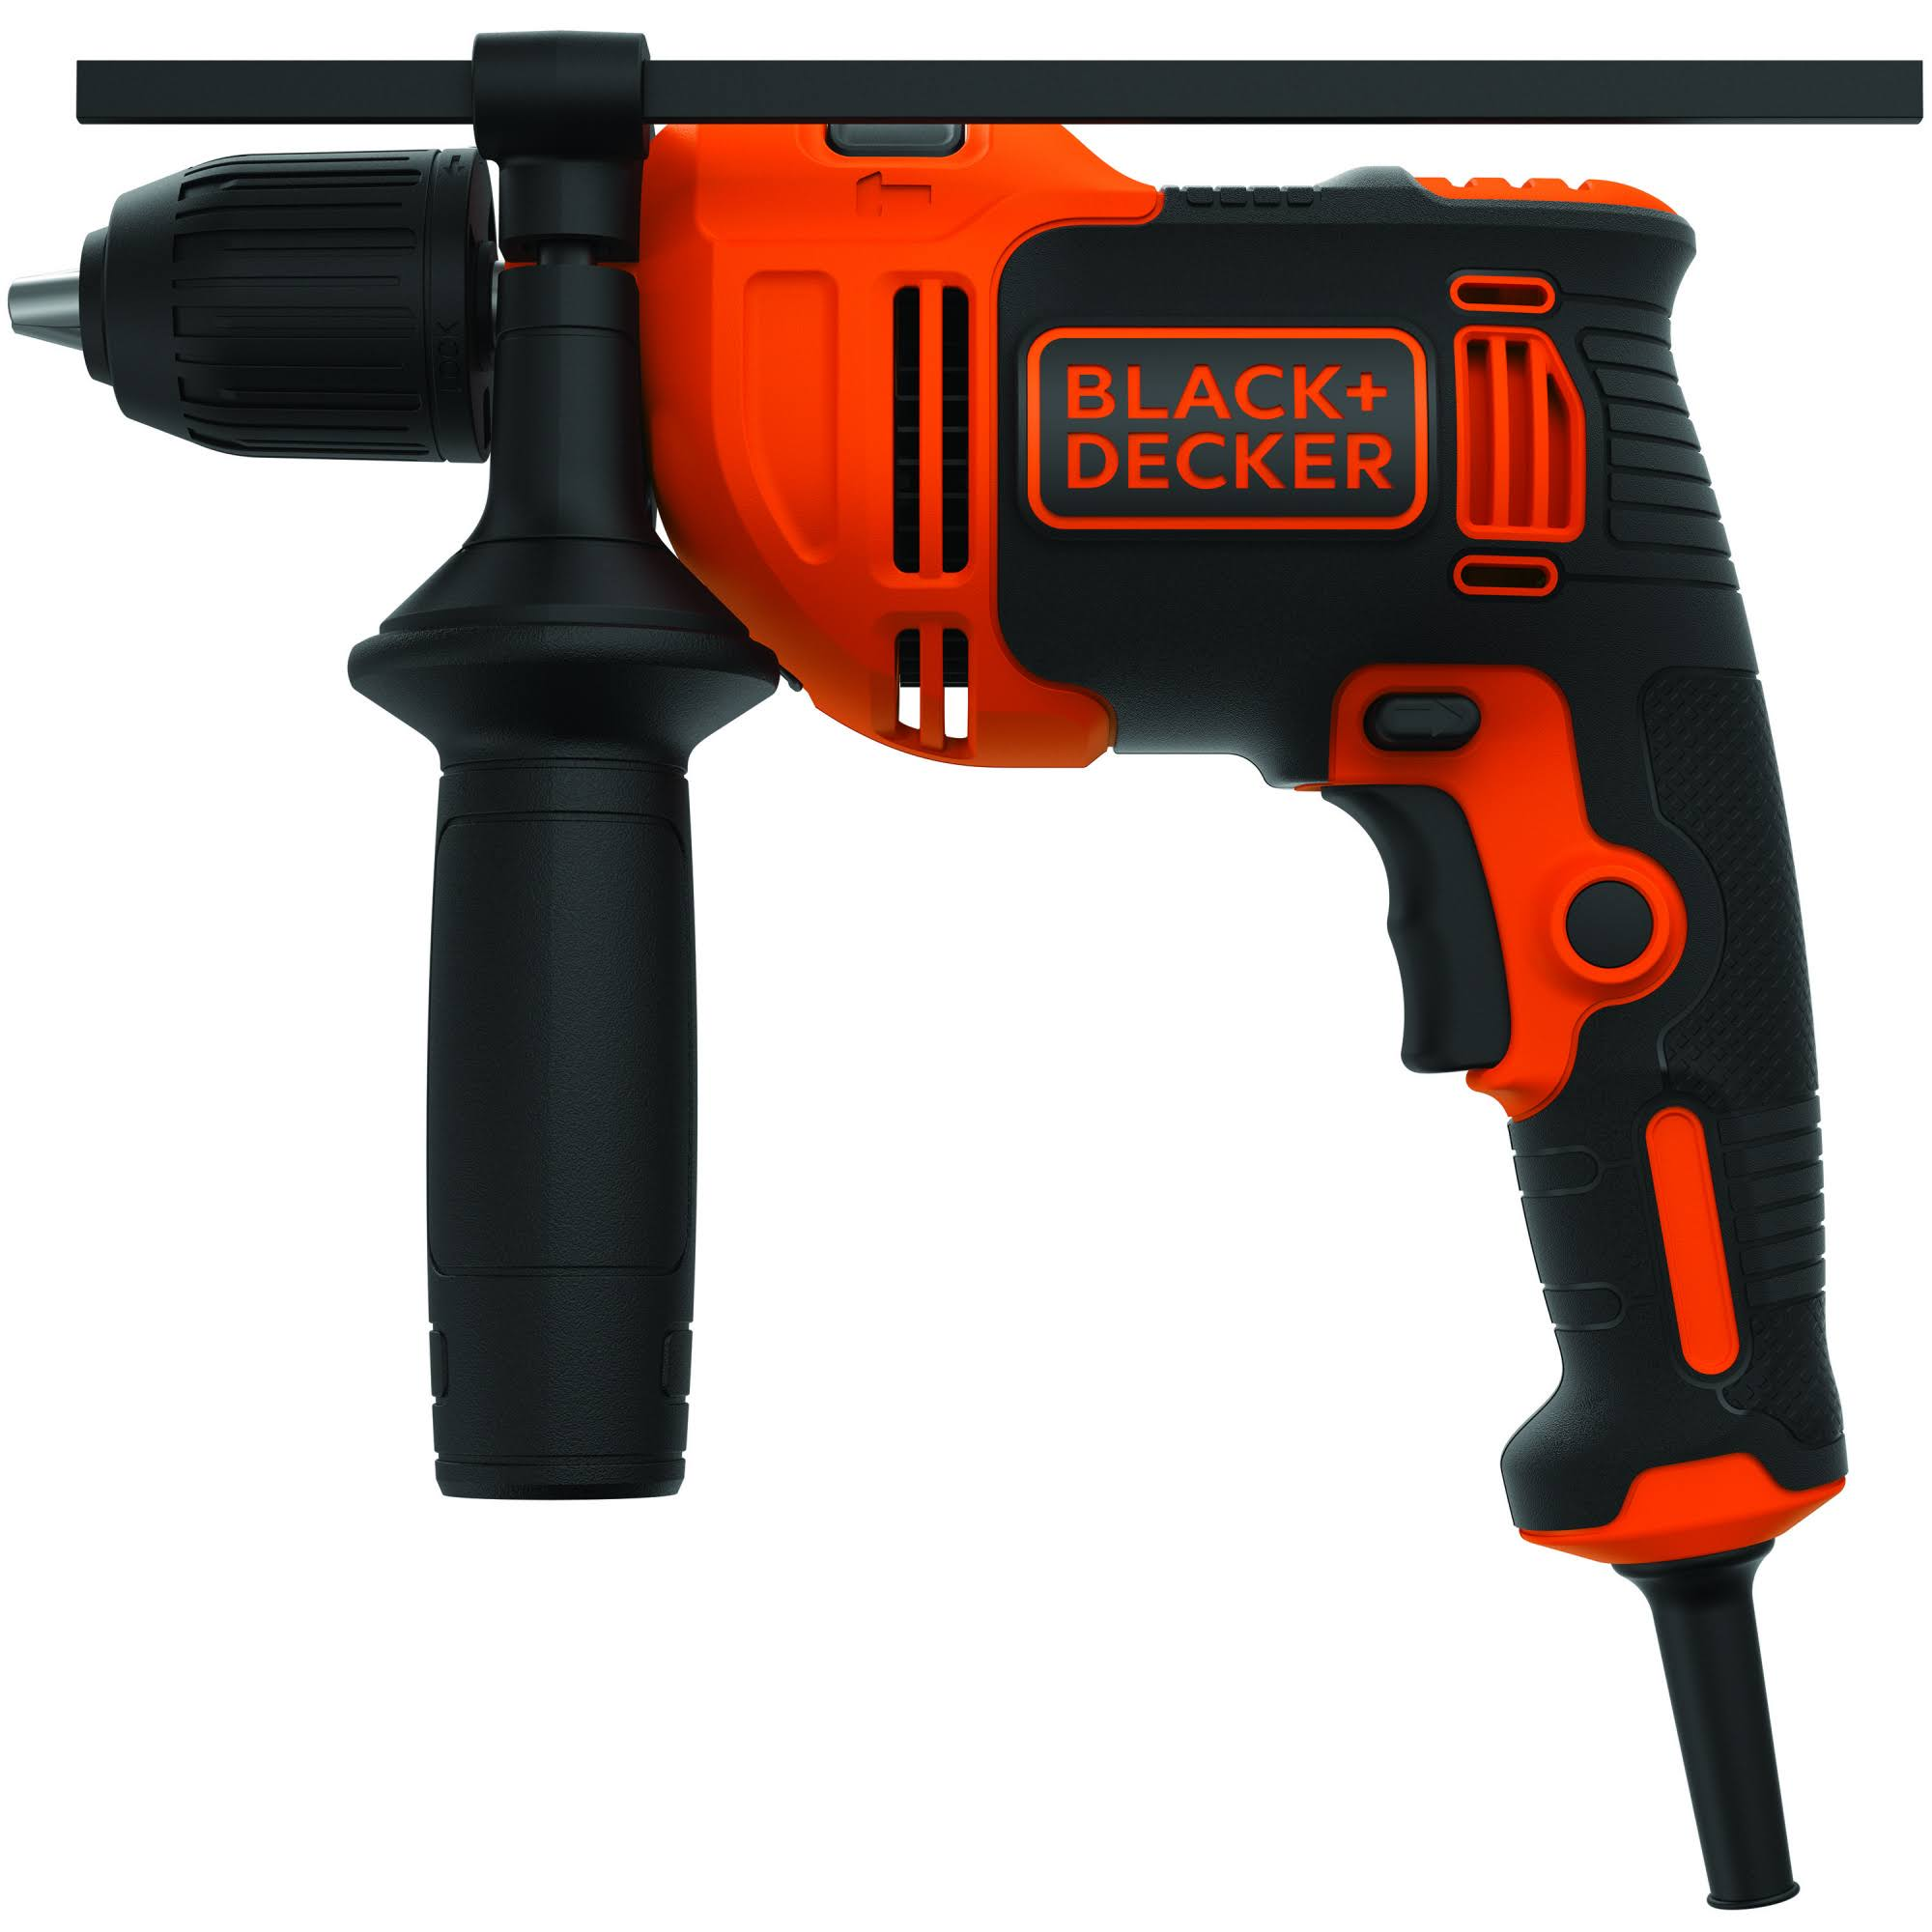 "Black and Decker BEHD201 Corded Hammer Drill - Black/Red, .5"", 6.5amp"